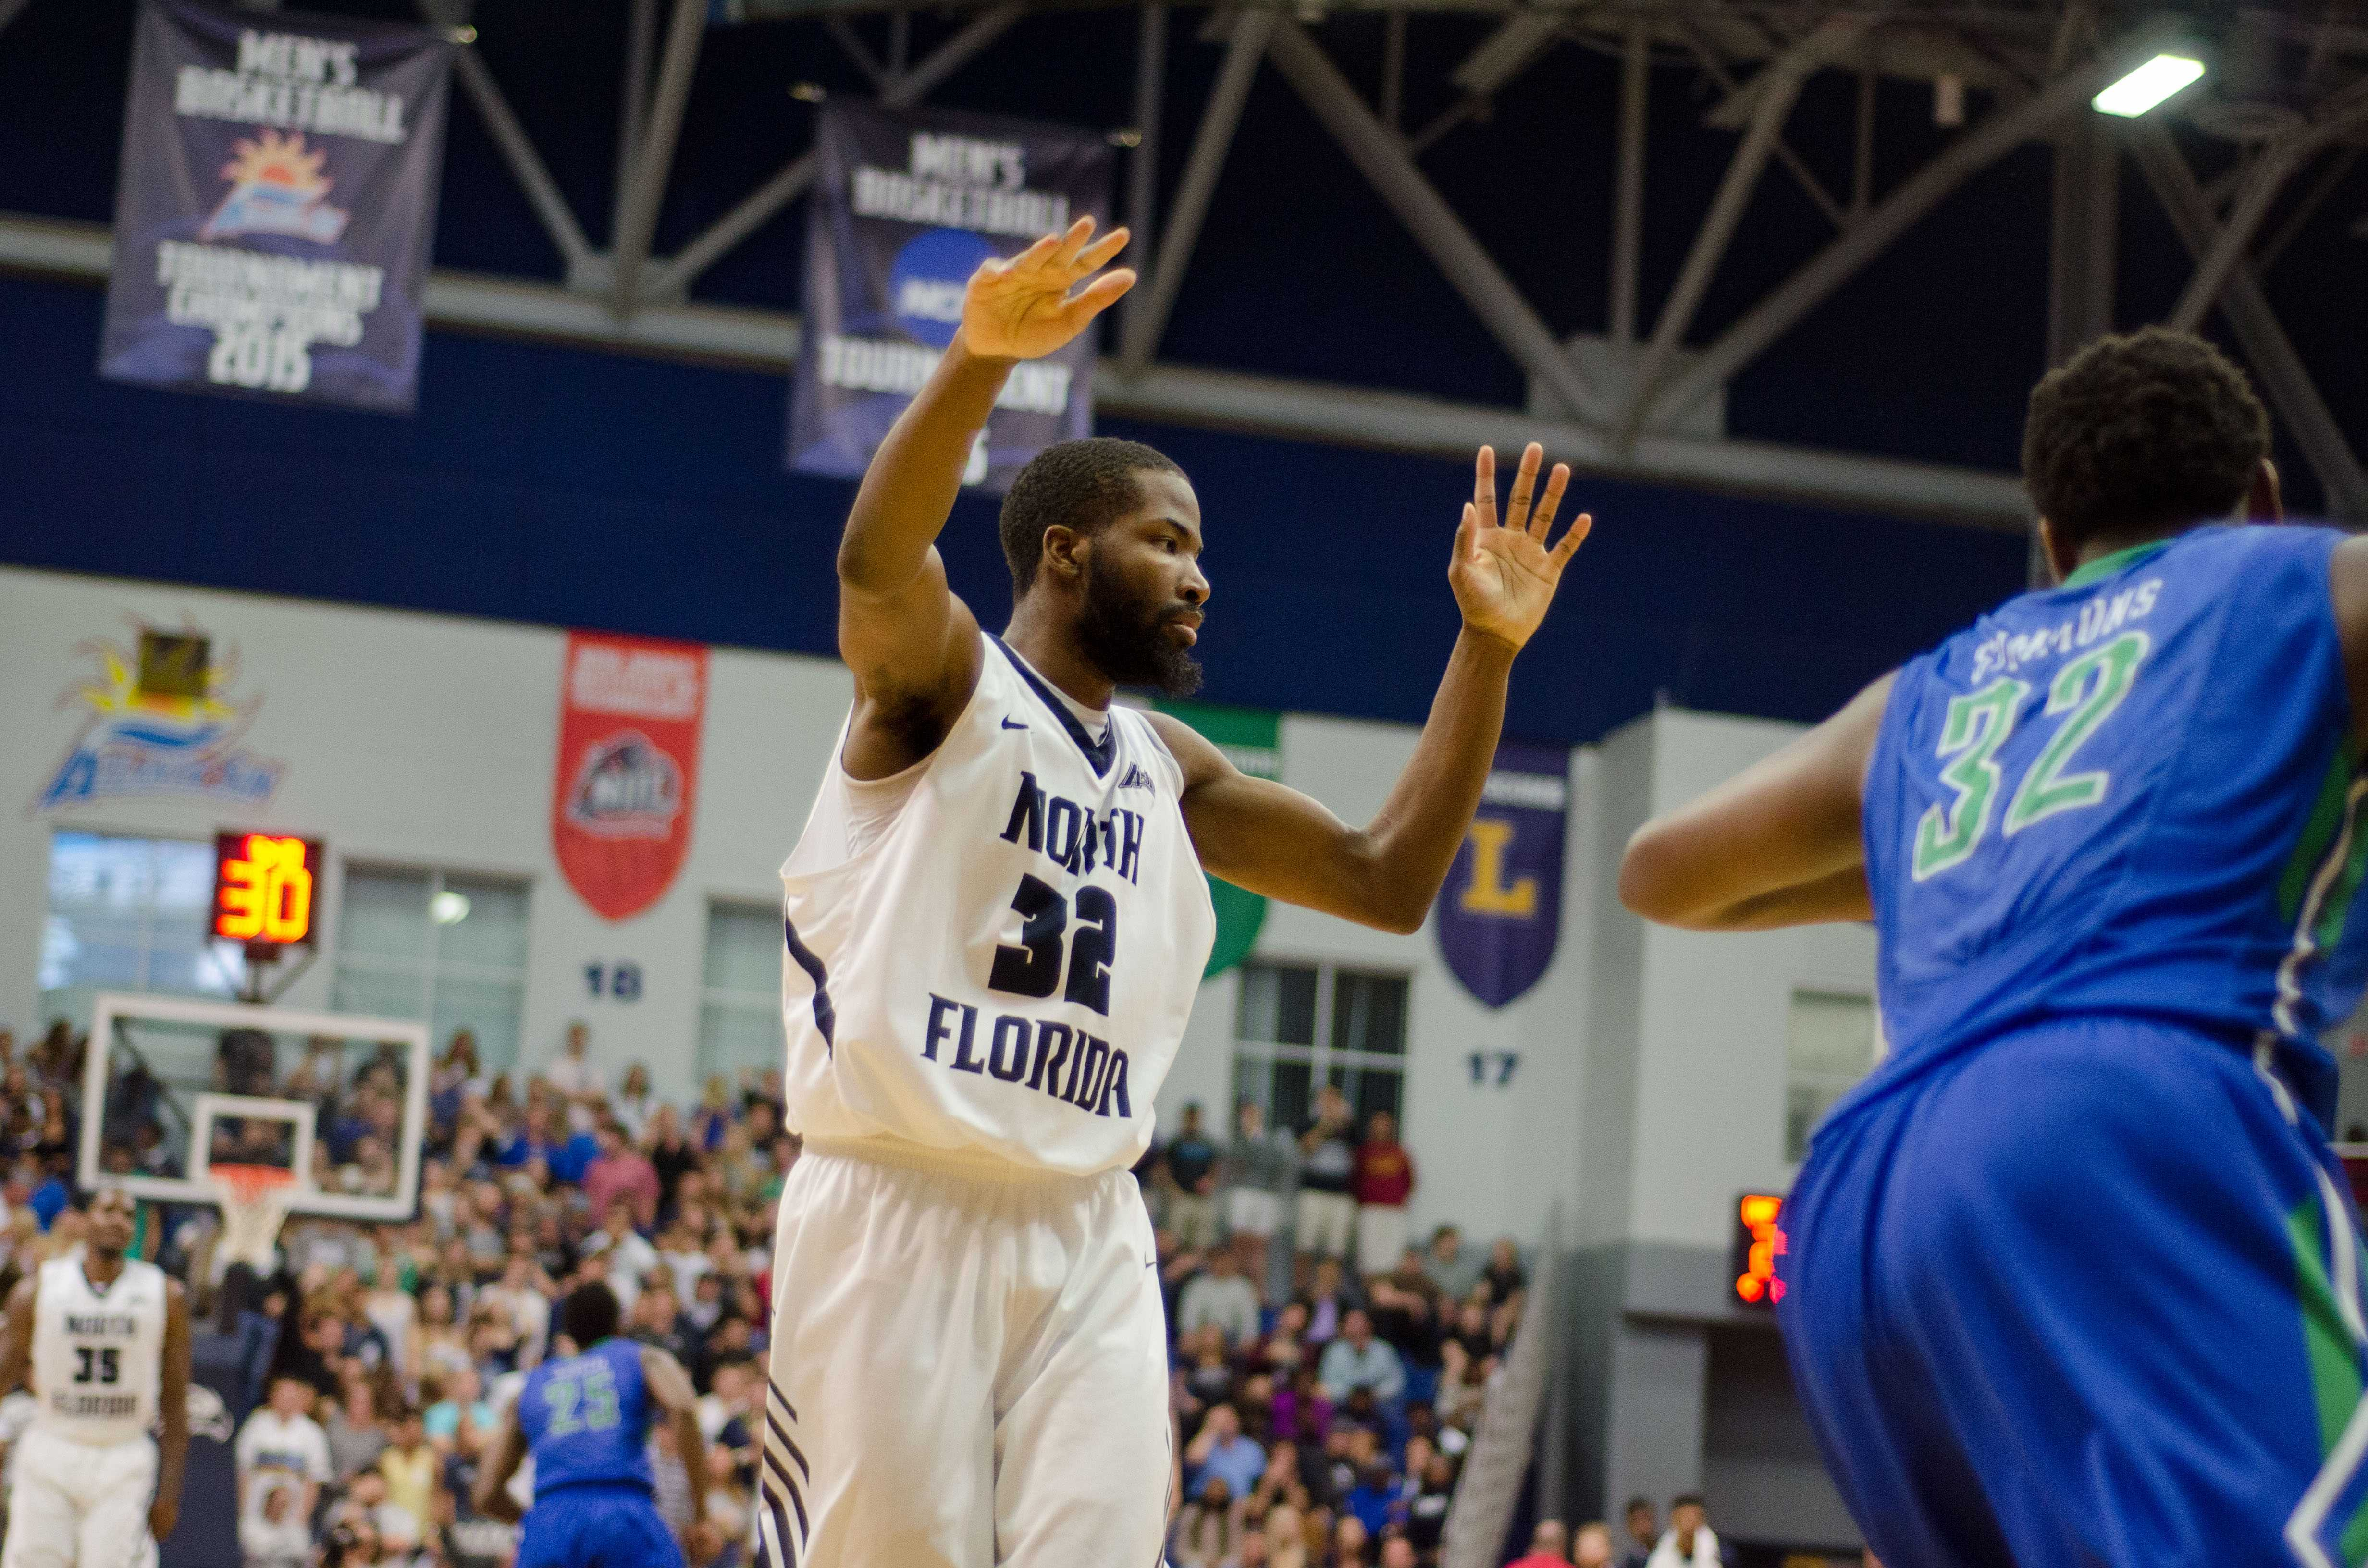 Ospreys face Gators in opening round of NIT